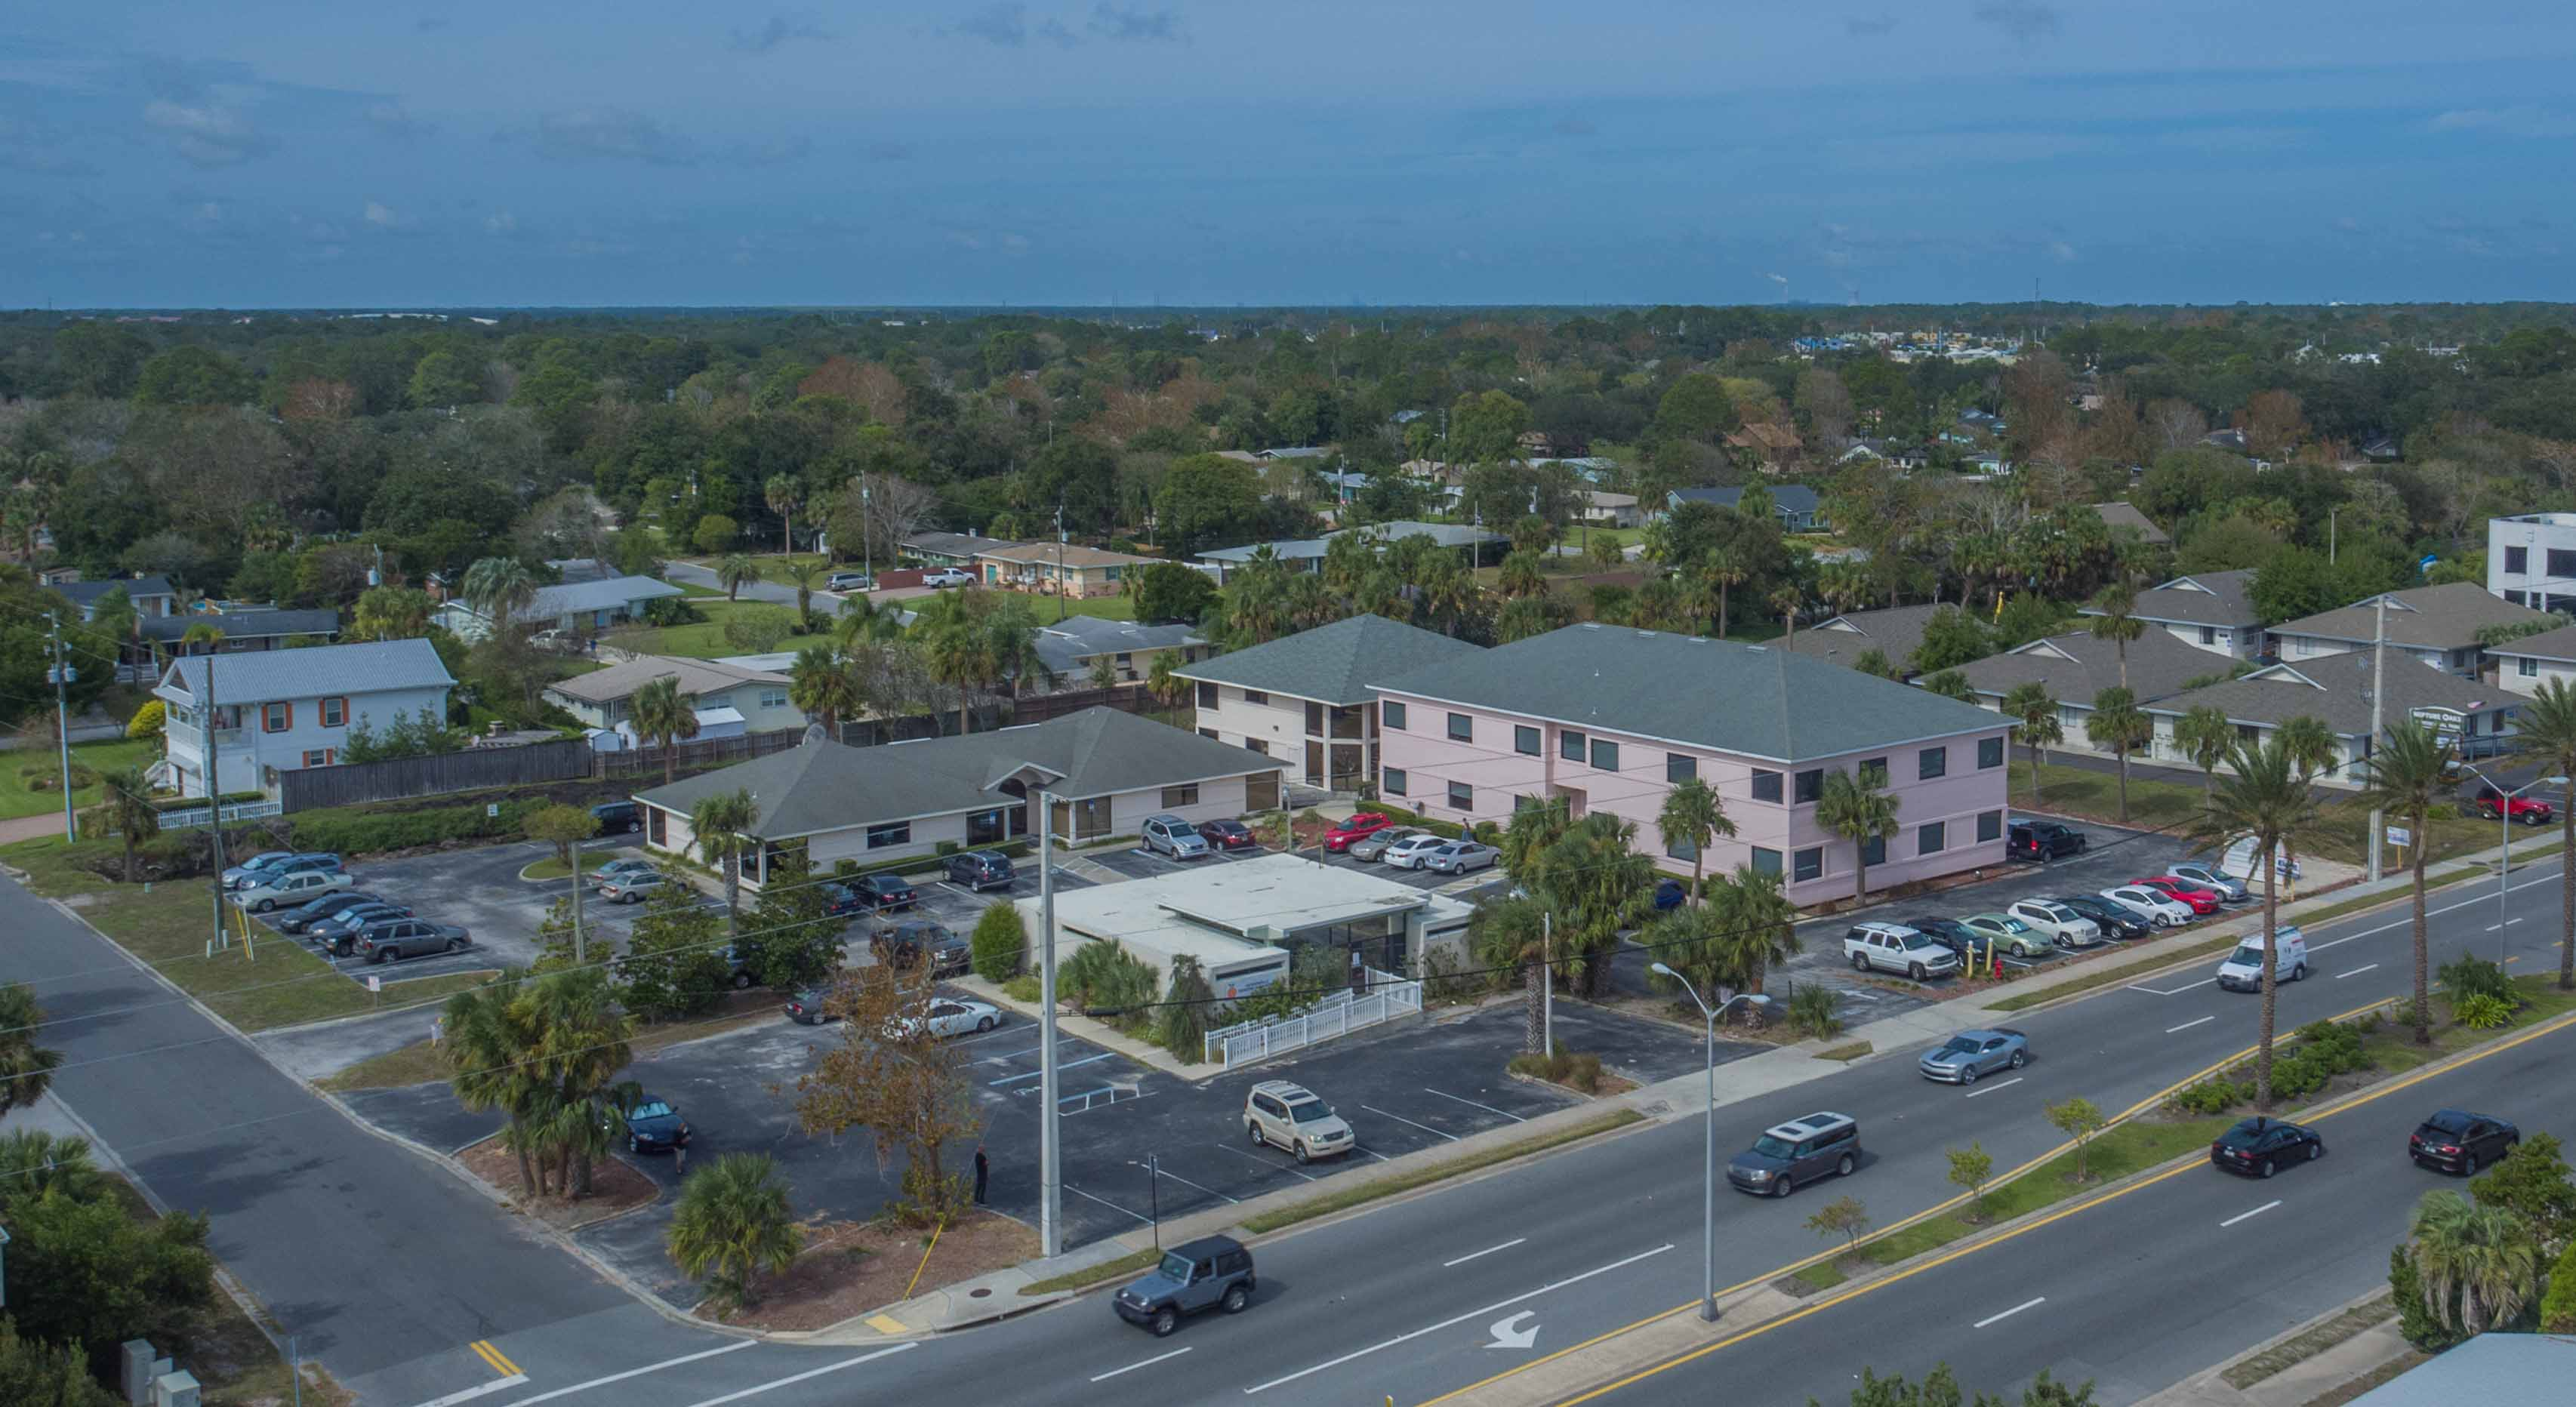 Coral Plaza, 900 Third St, Neptune Beach, FL 32266, 1500 to 5,000 sf, office